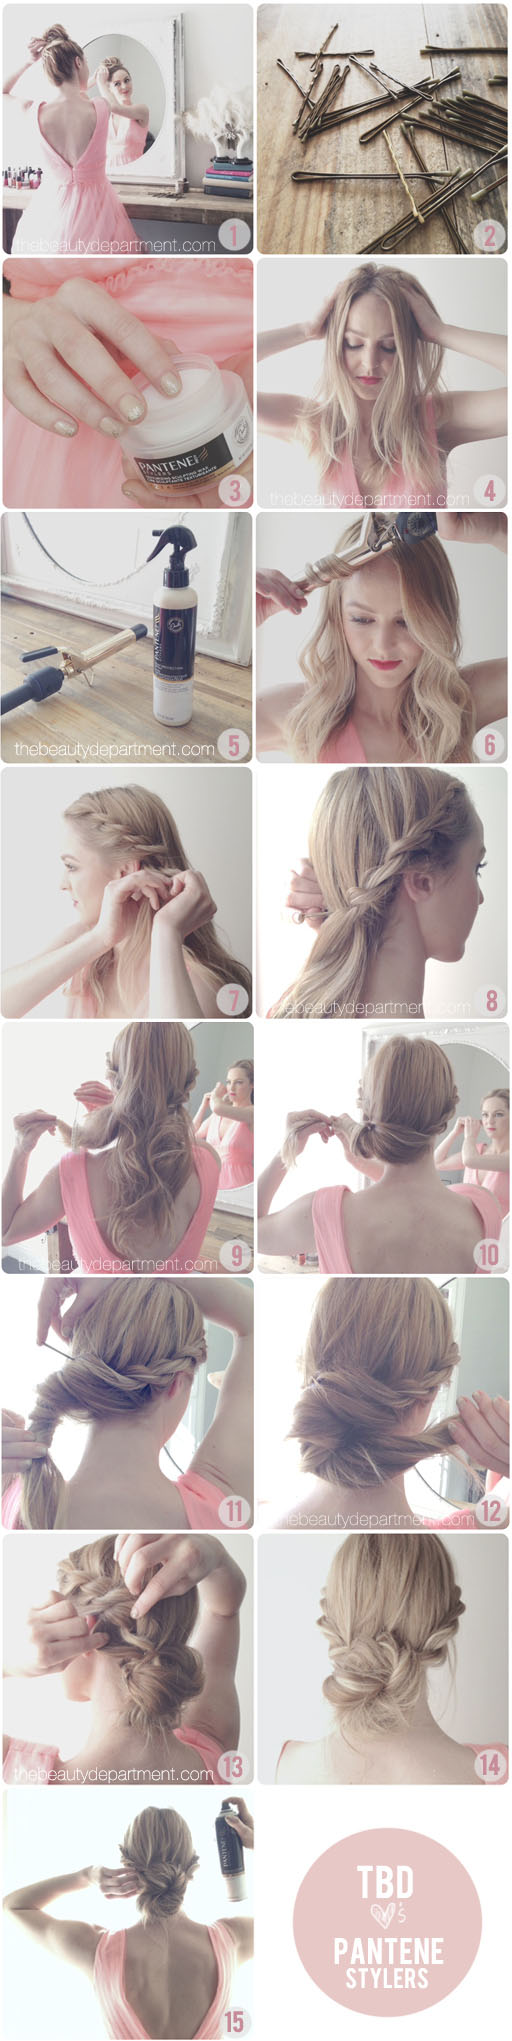 hairstyles (11)